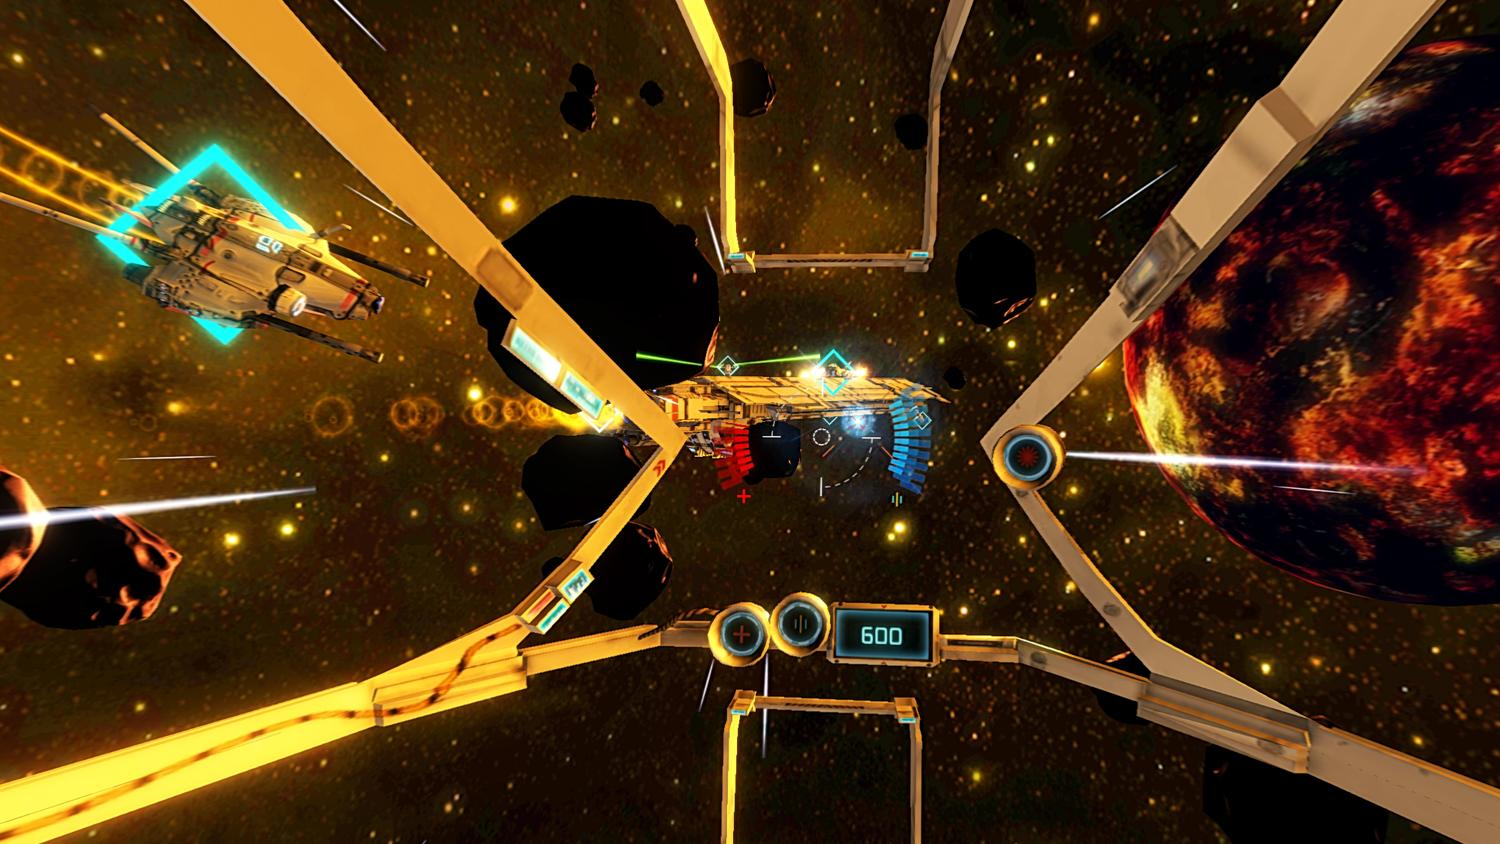 End Space VR for Cardboard Screenshot 1